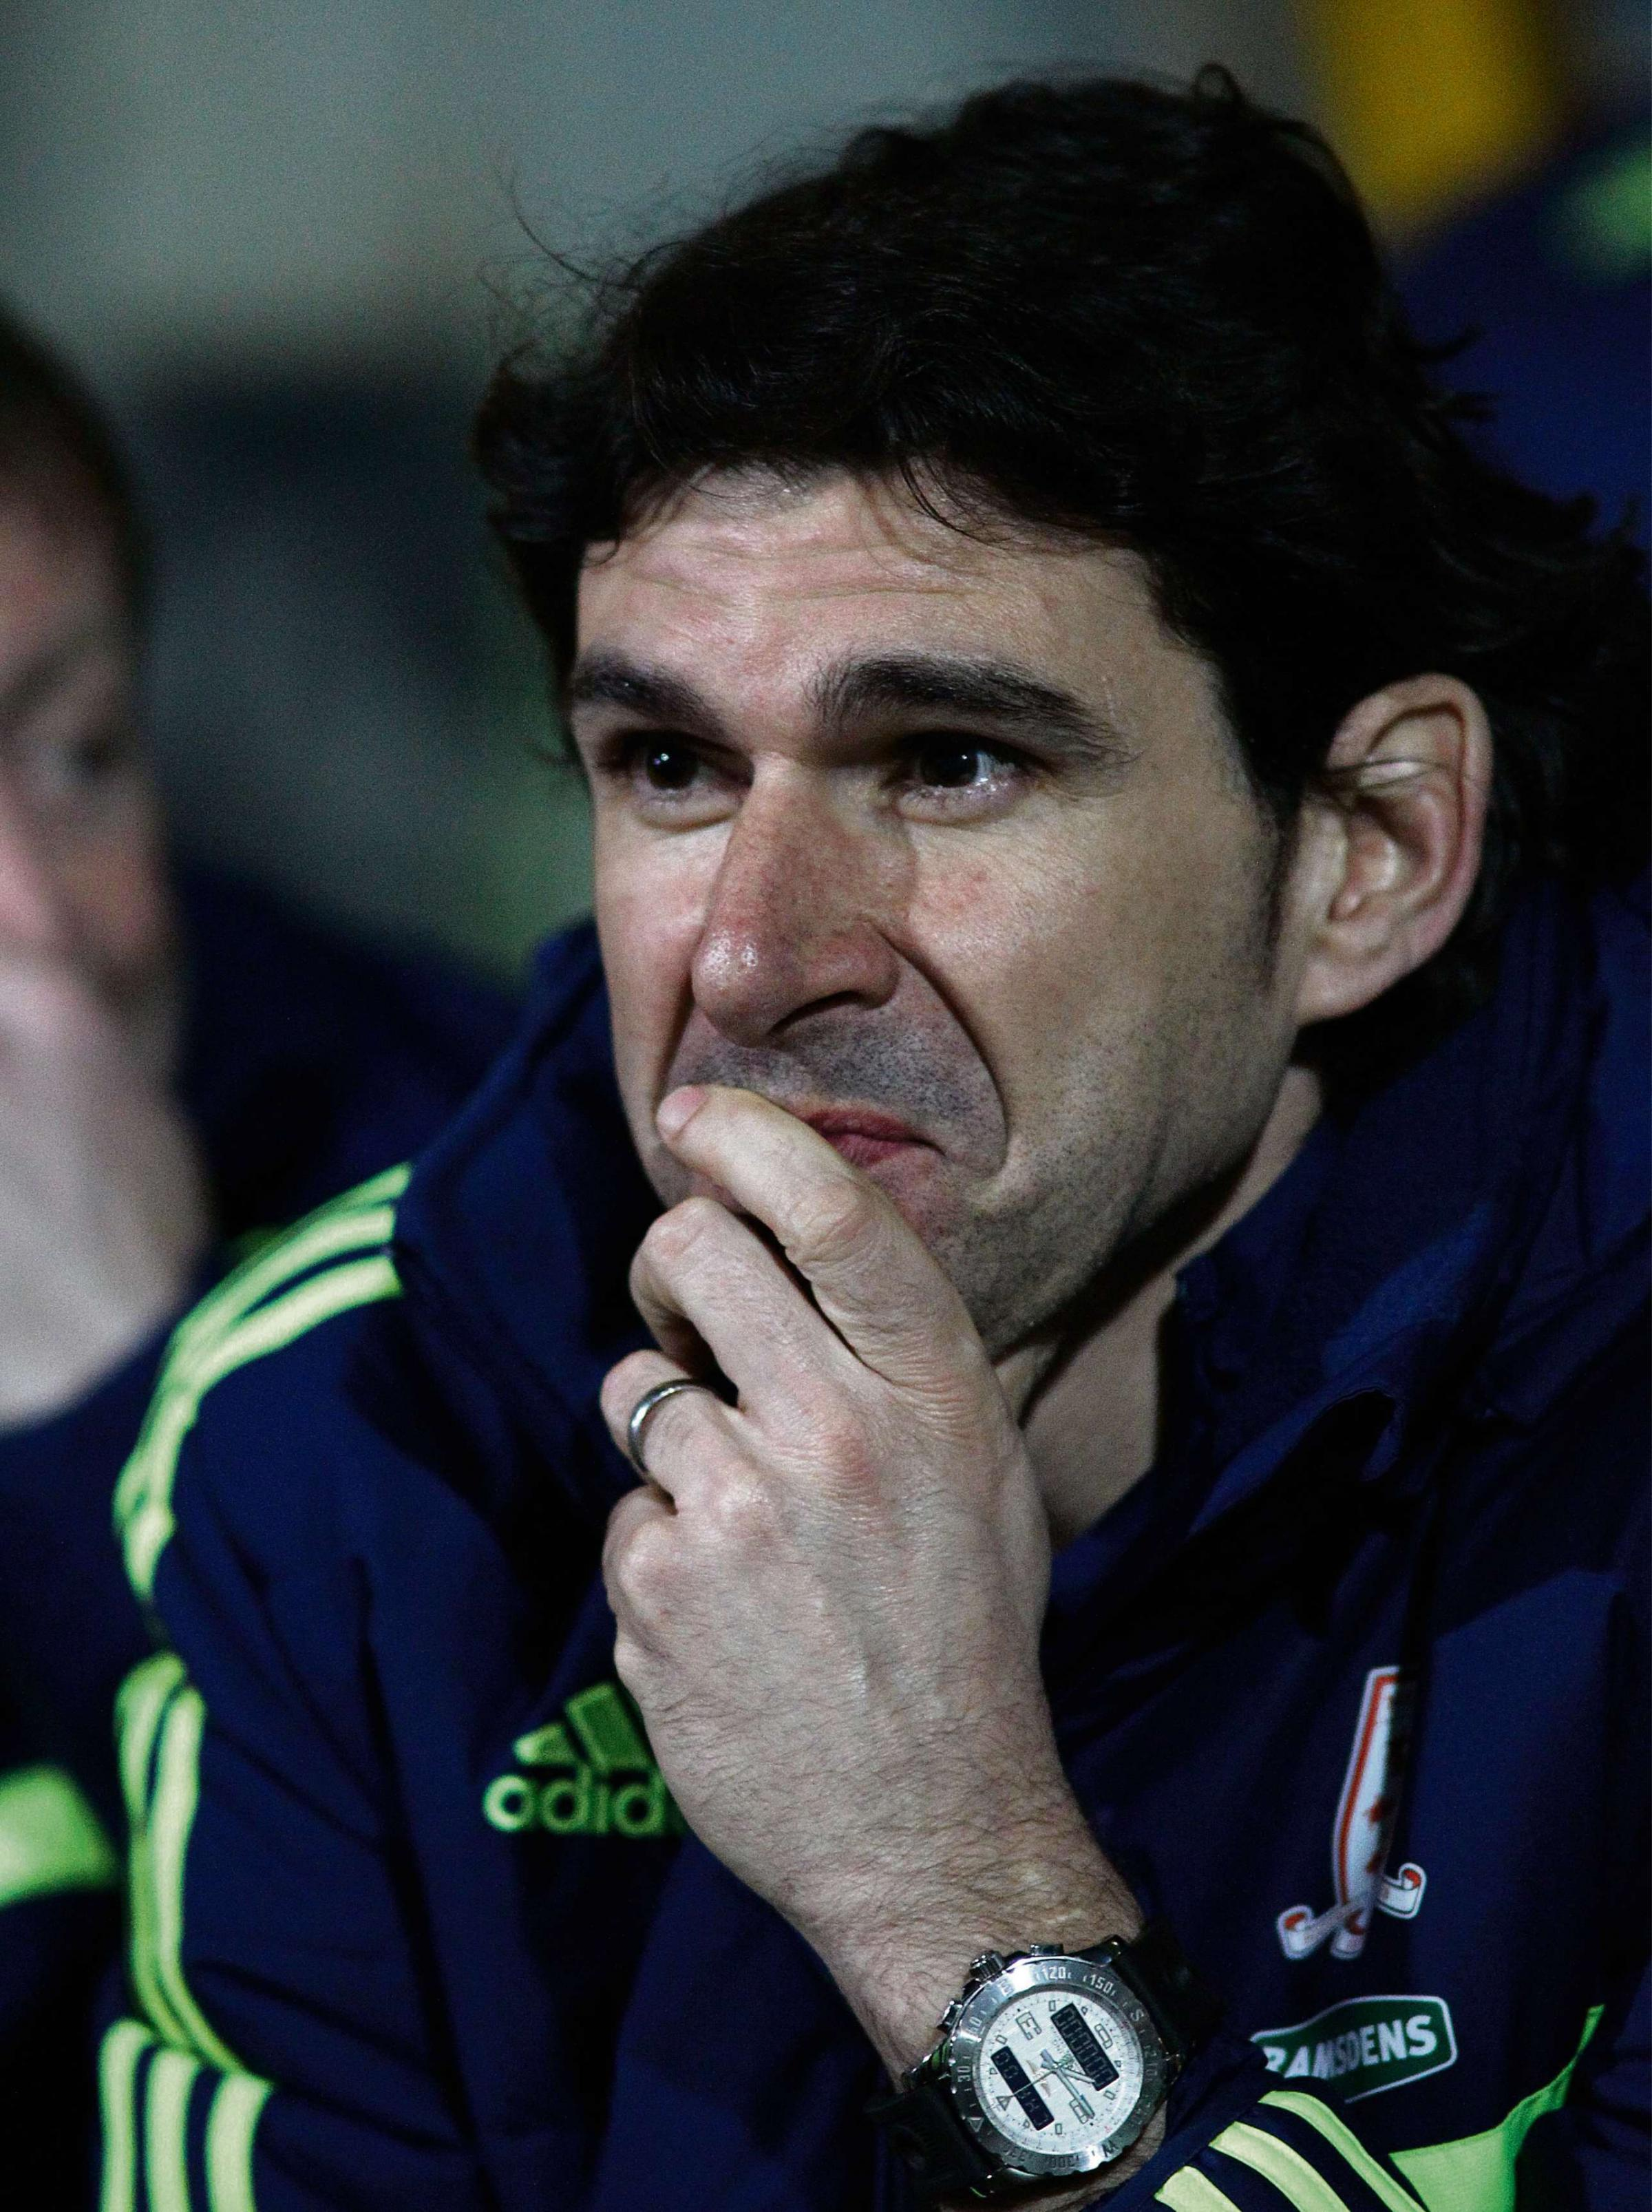 SATISFIED MAN: Aitor Karanka was happy with his players' efforts during Saturday's 4-0 win over Real Balompedica Linense